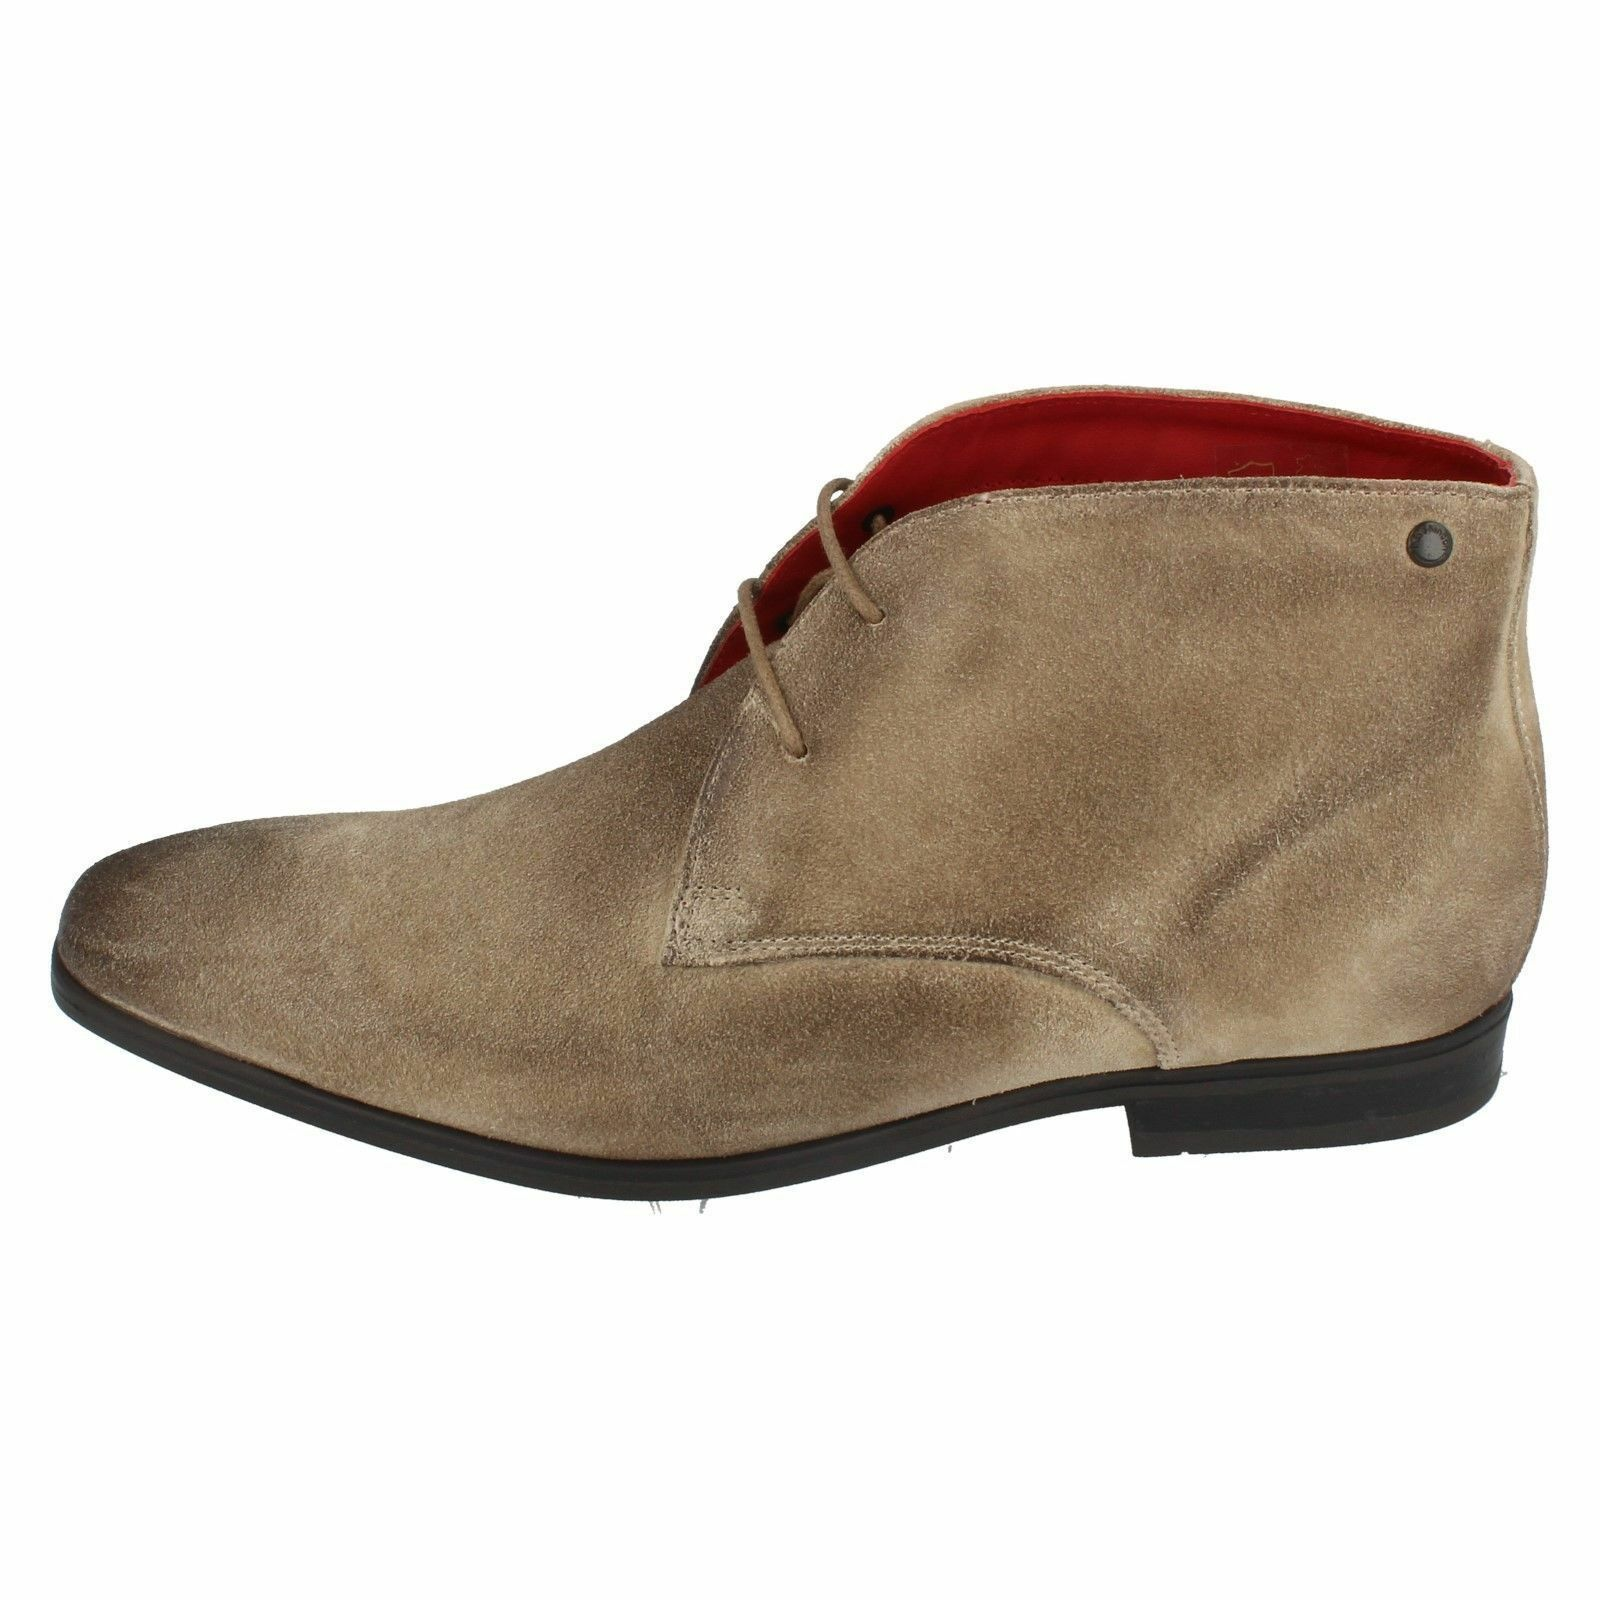 Mens Henry By Leather Lace Up Ankle Boot By Henry Base London £49.99 9525d0